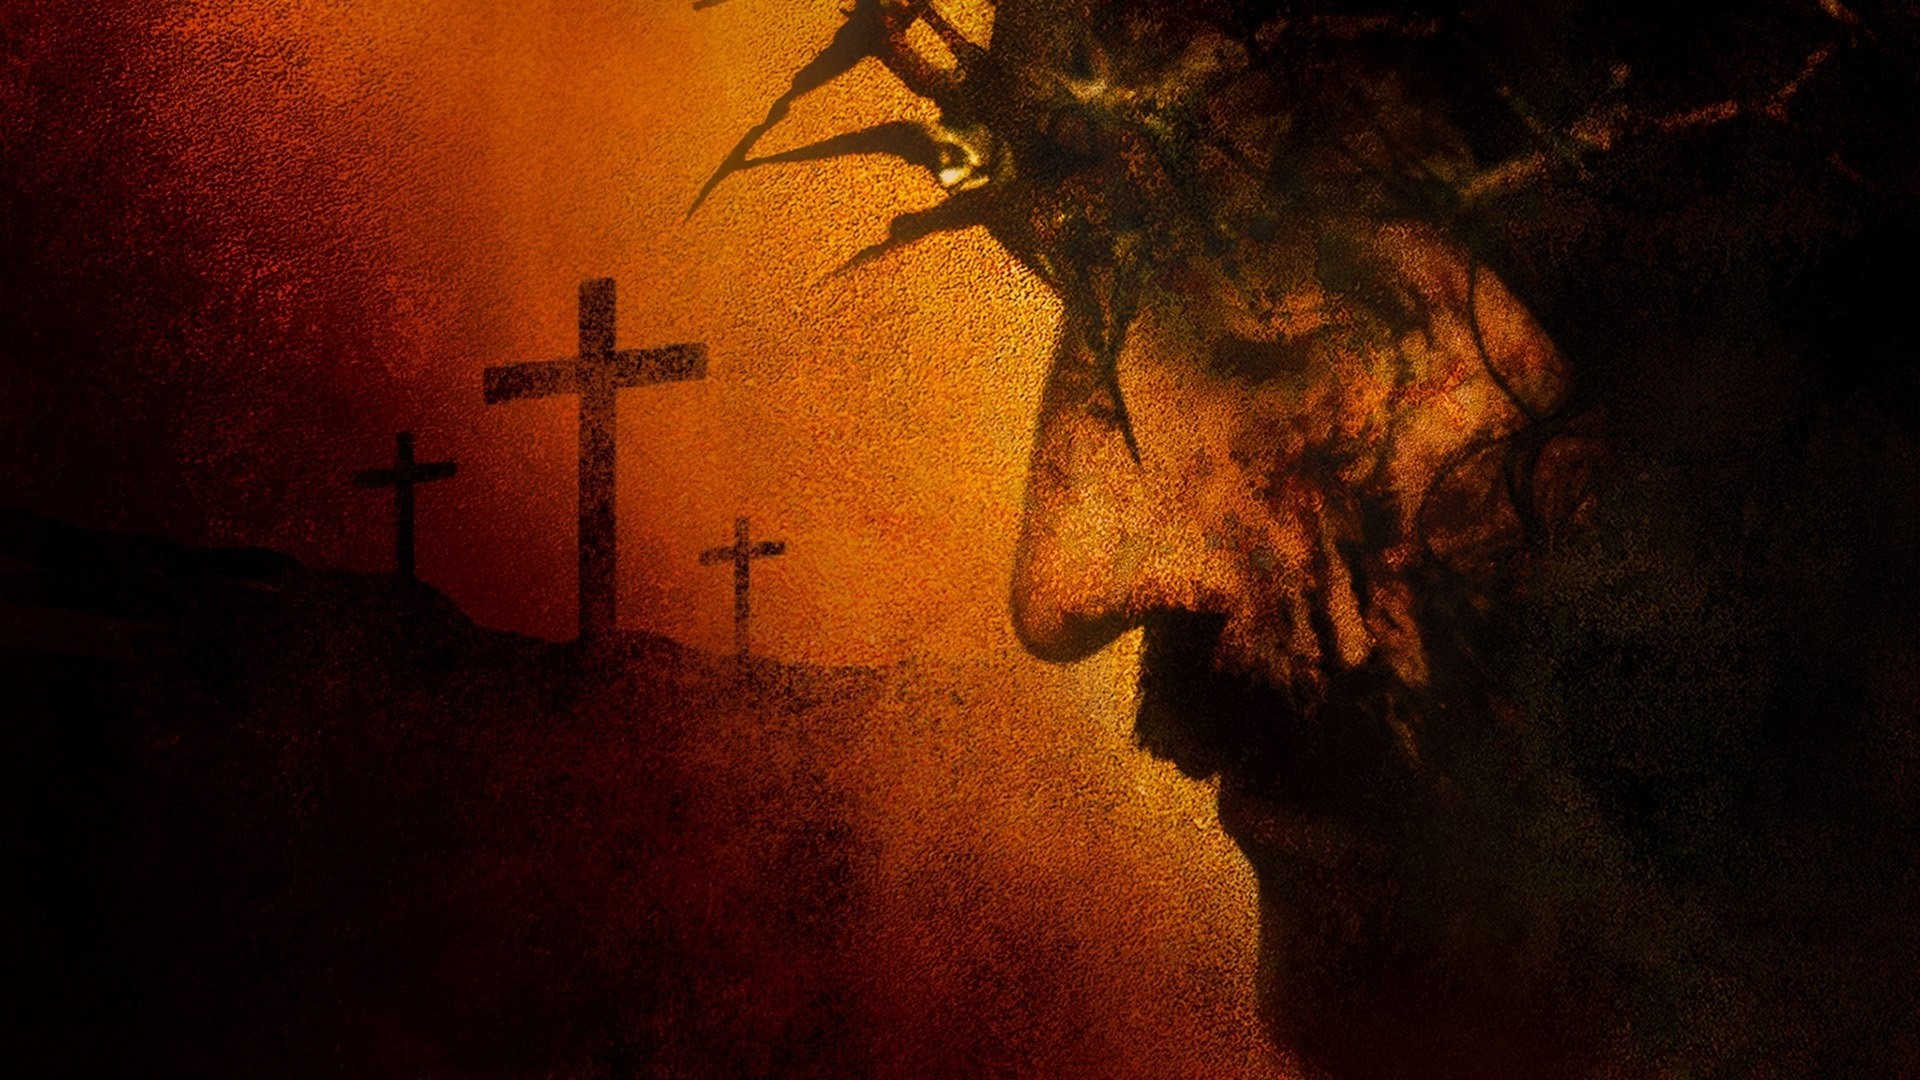 Res: 1920x1080, Title : 2 the passion of the christ hd wallpapers | background images.  Dimension : 1920 x 1080. File Type : JPG/JPEG